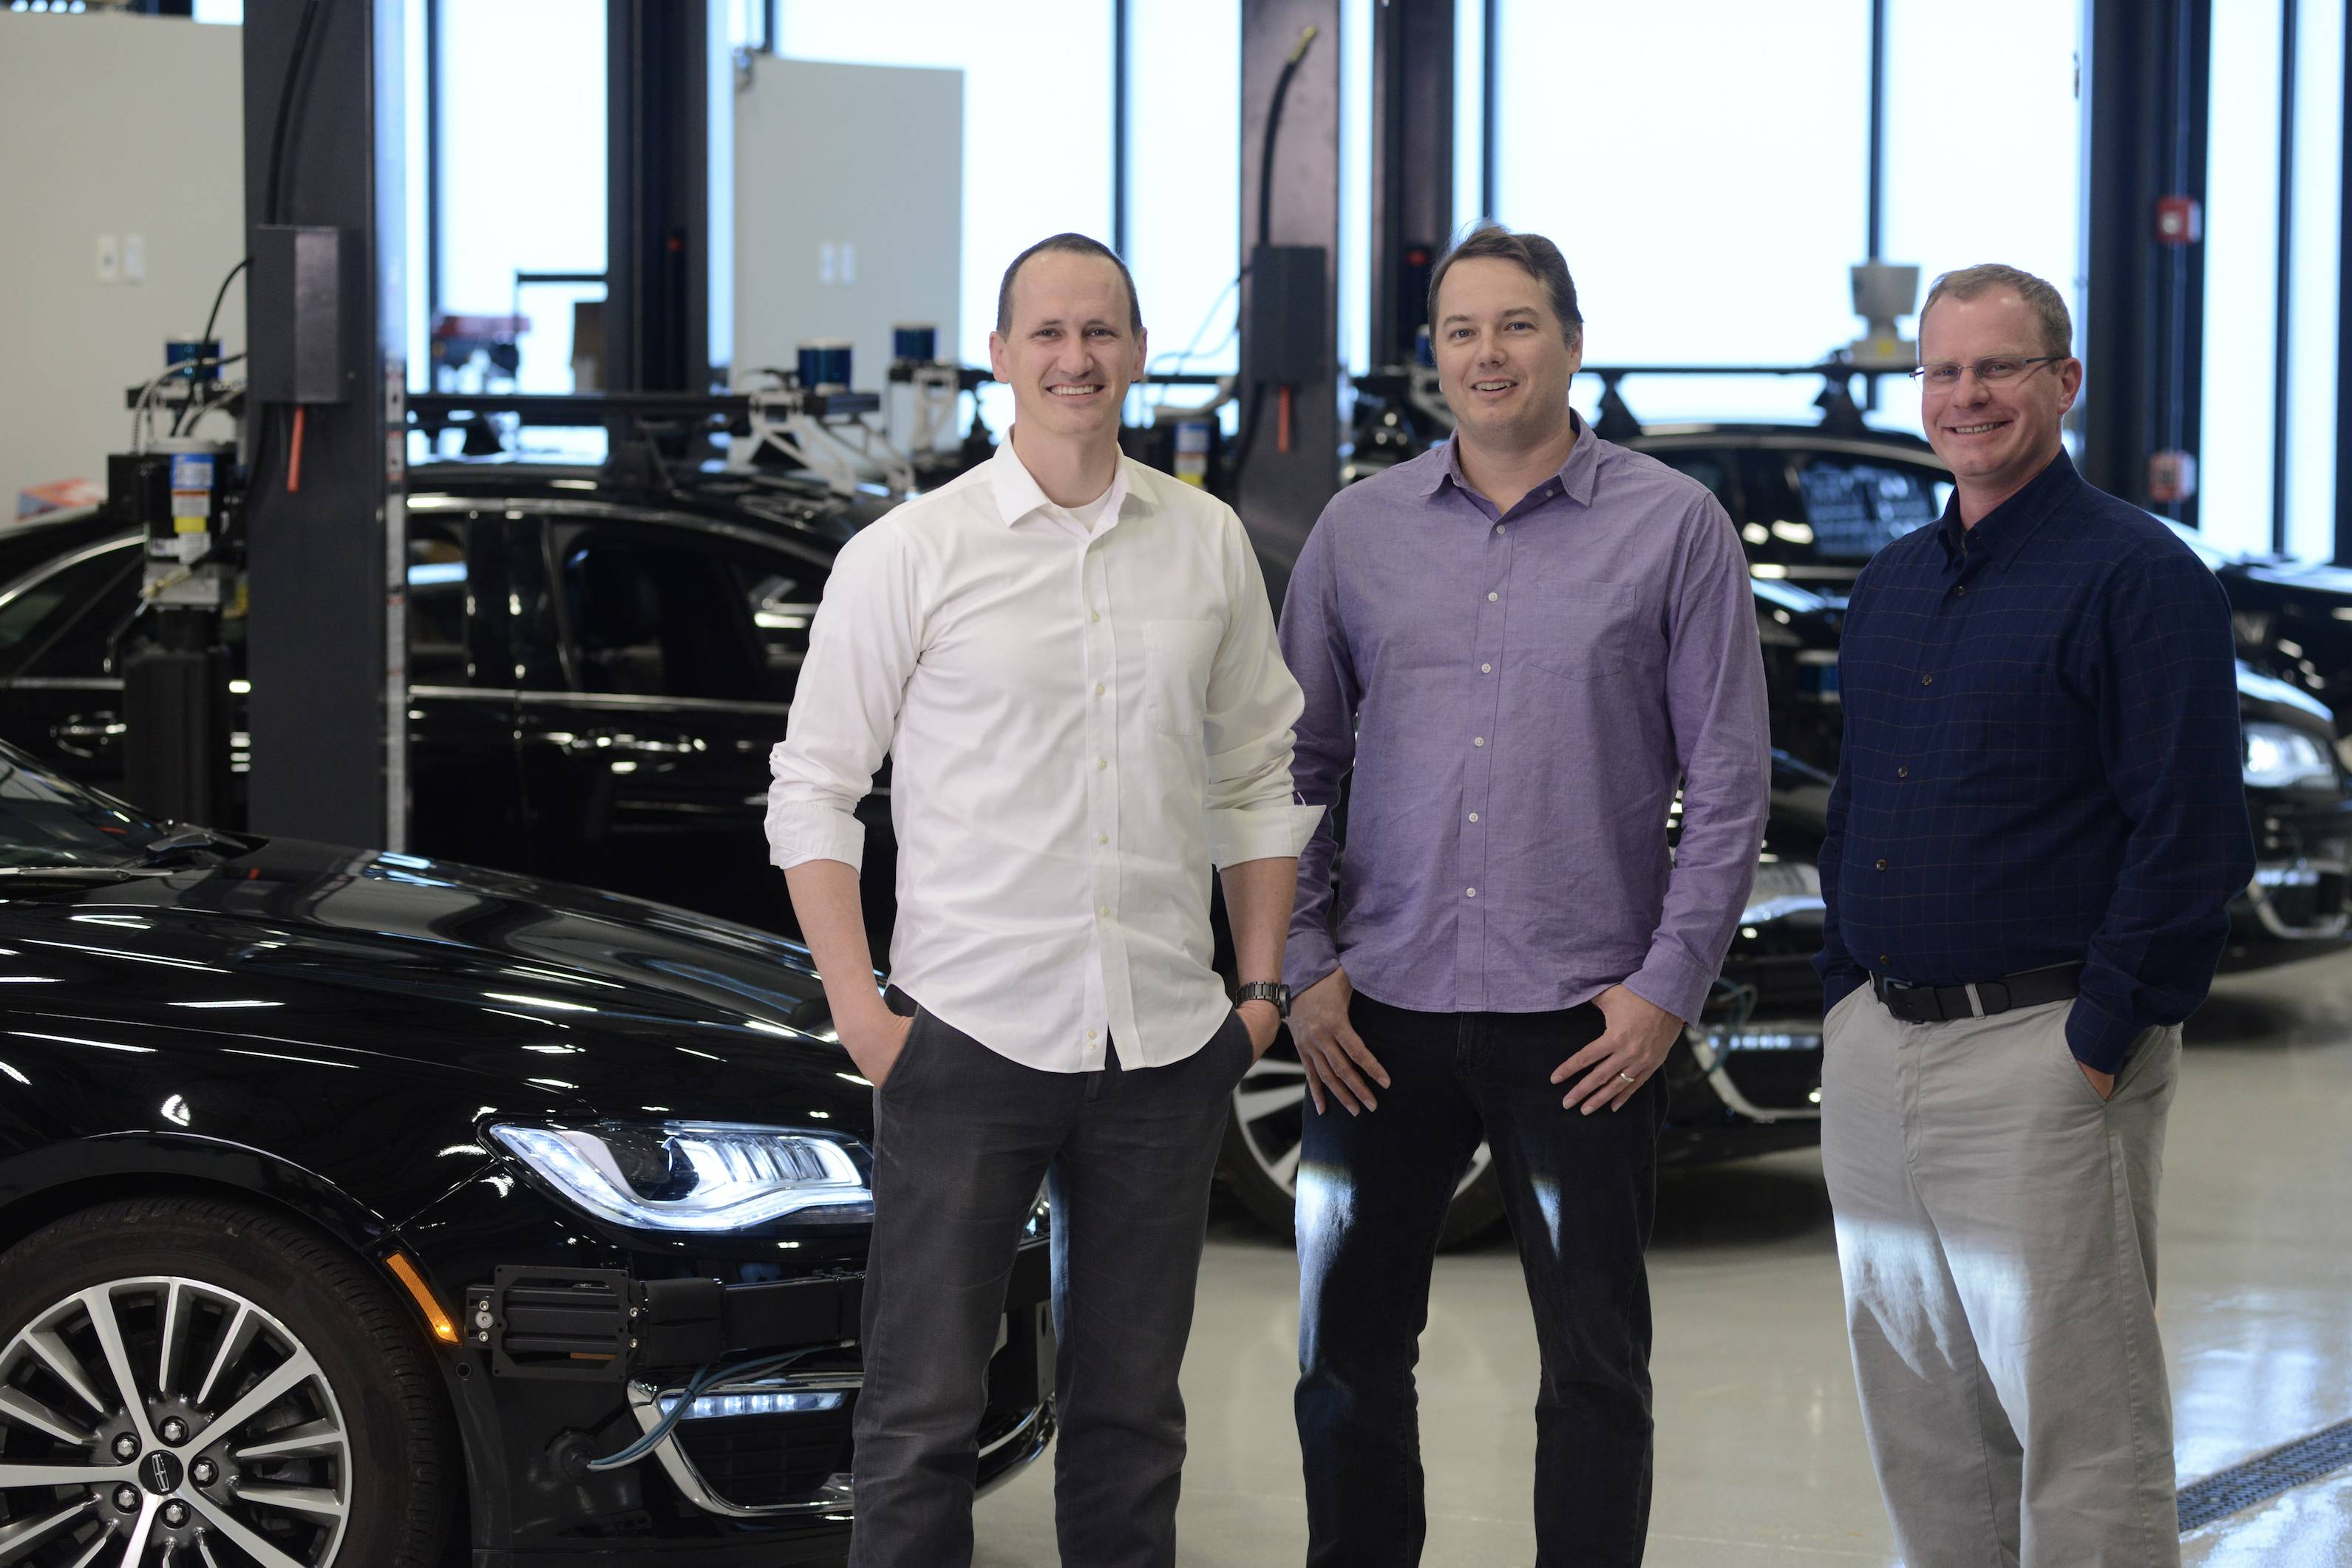 Sterling Anderson, Chris Urmson and Drew Bagnell are the three founders of Aurora Innovation, a company that creates software for self-driving cars.